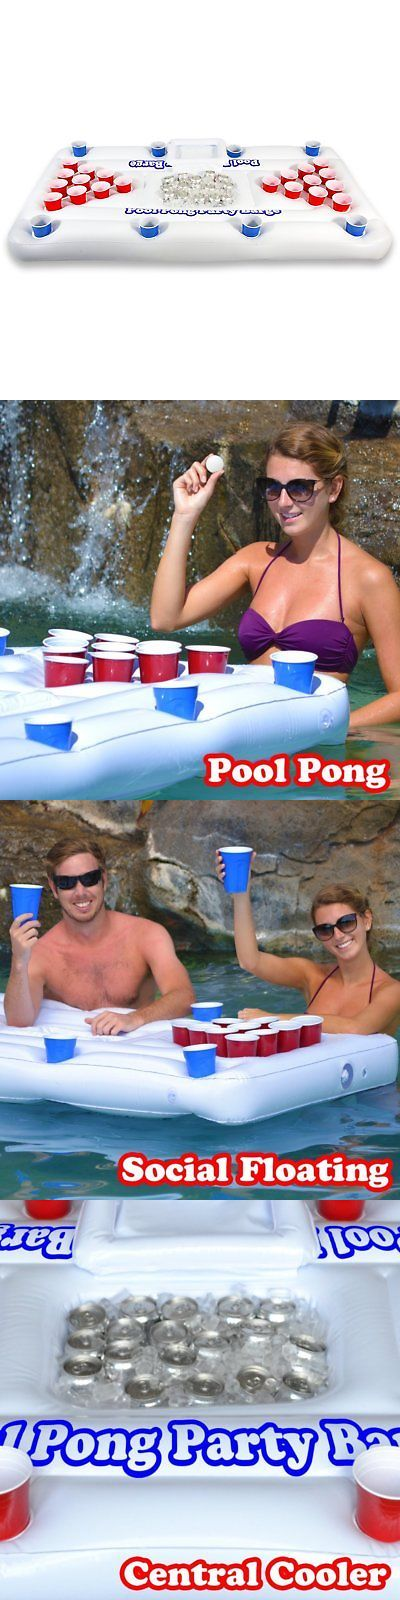 Floats and Rafts 181055: Gopong Pool Party Barge Floating Beer Pong Table With Cooler, White, 6-Feet -> BUY IT NOW ONLY: $49.38 on eBay!